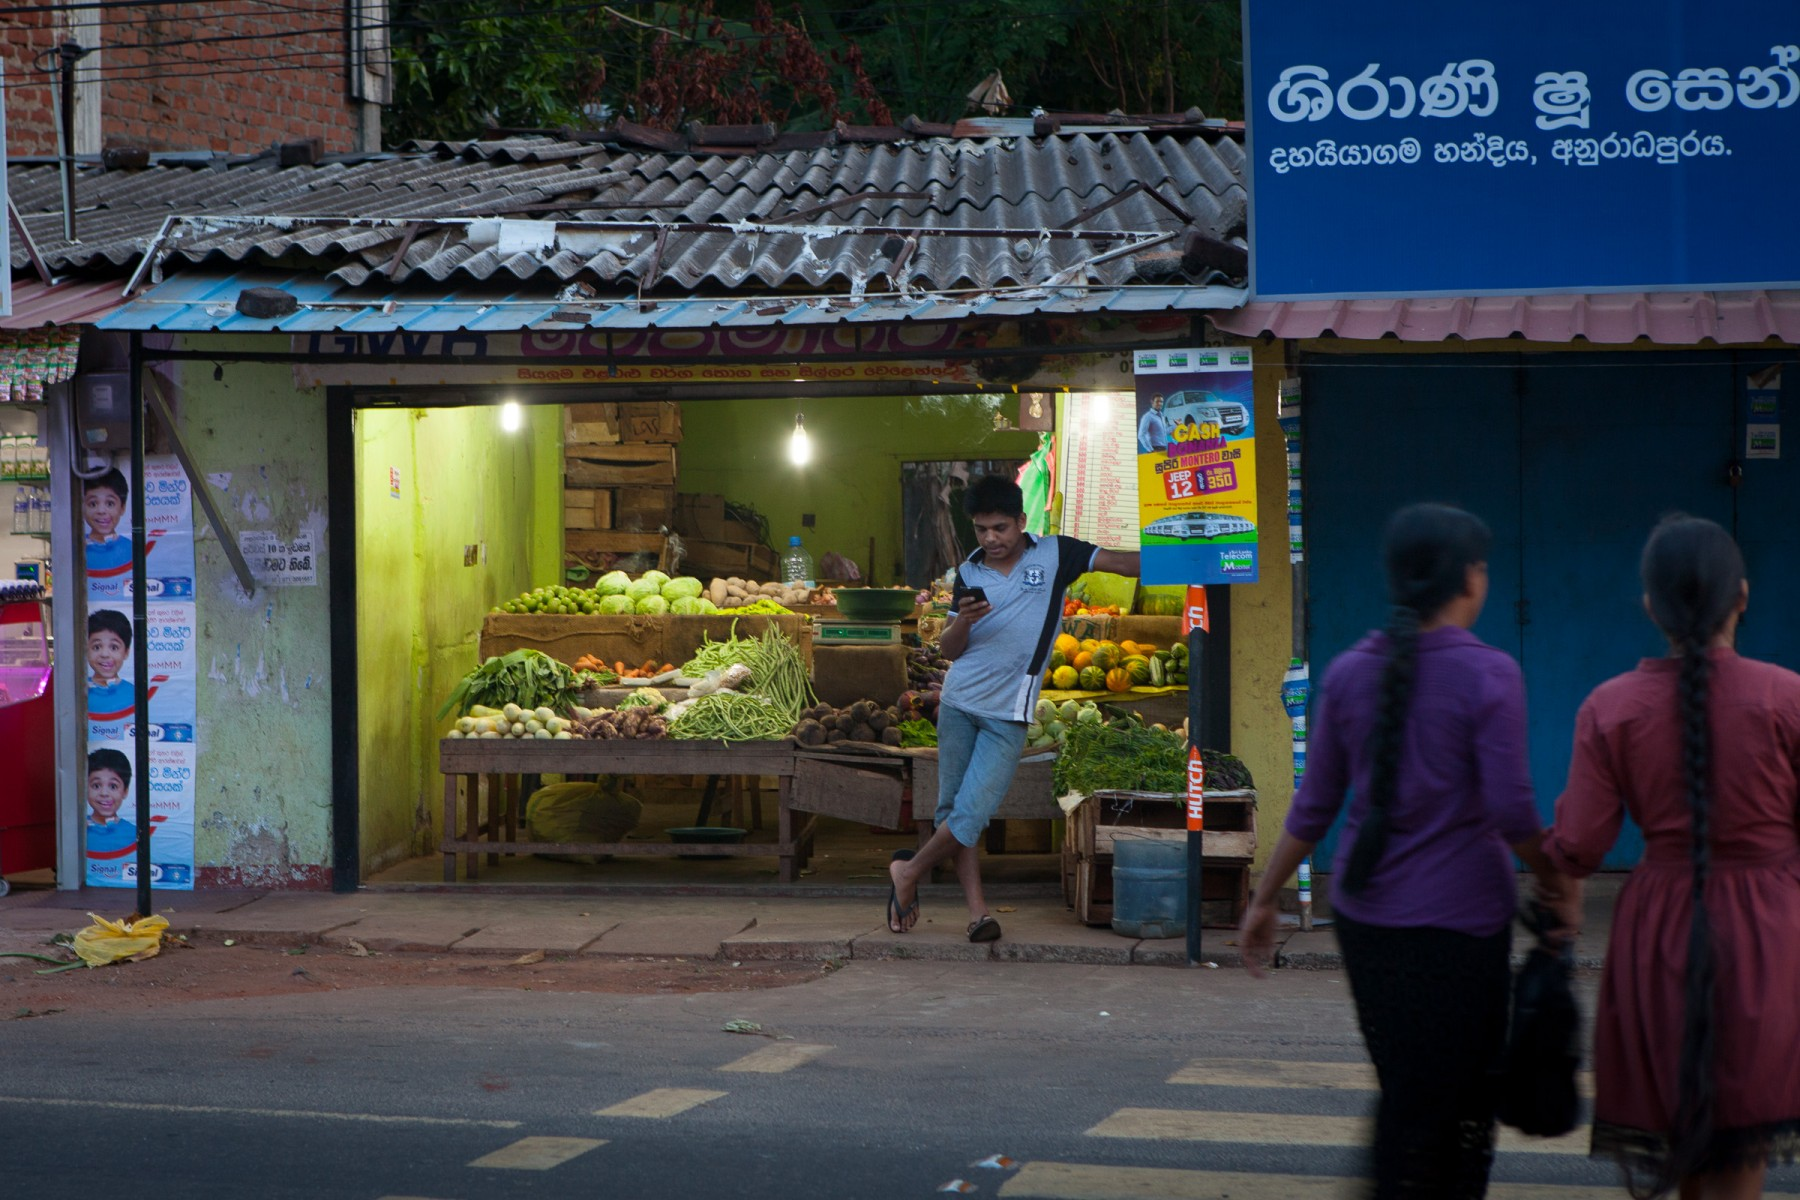 Fruit stall in downtown Anuradhapura.